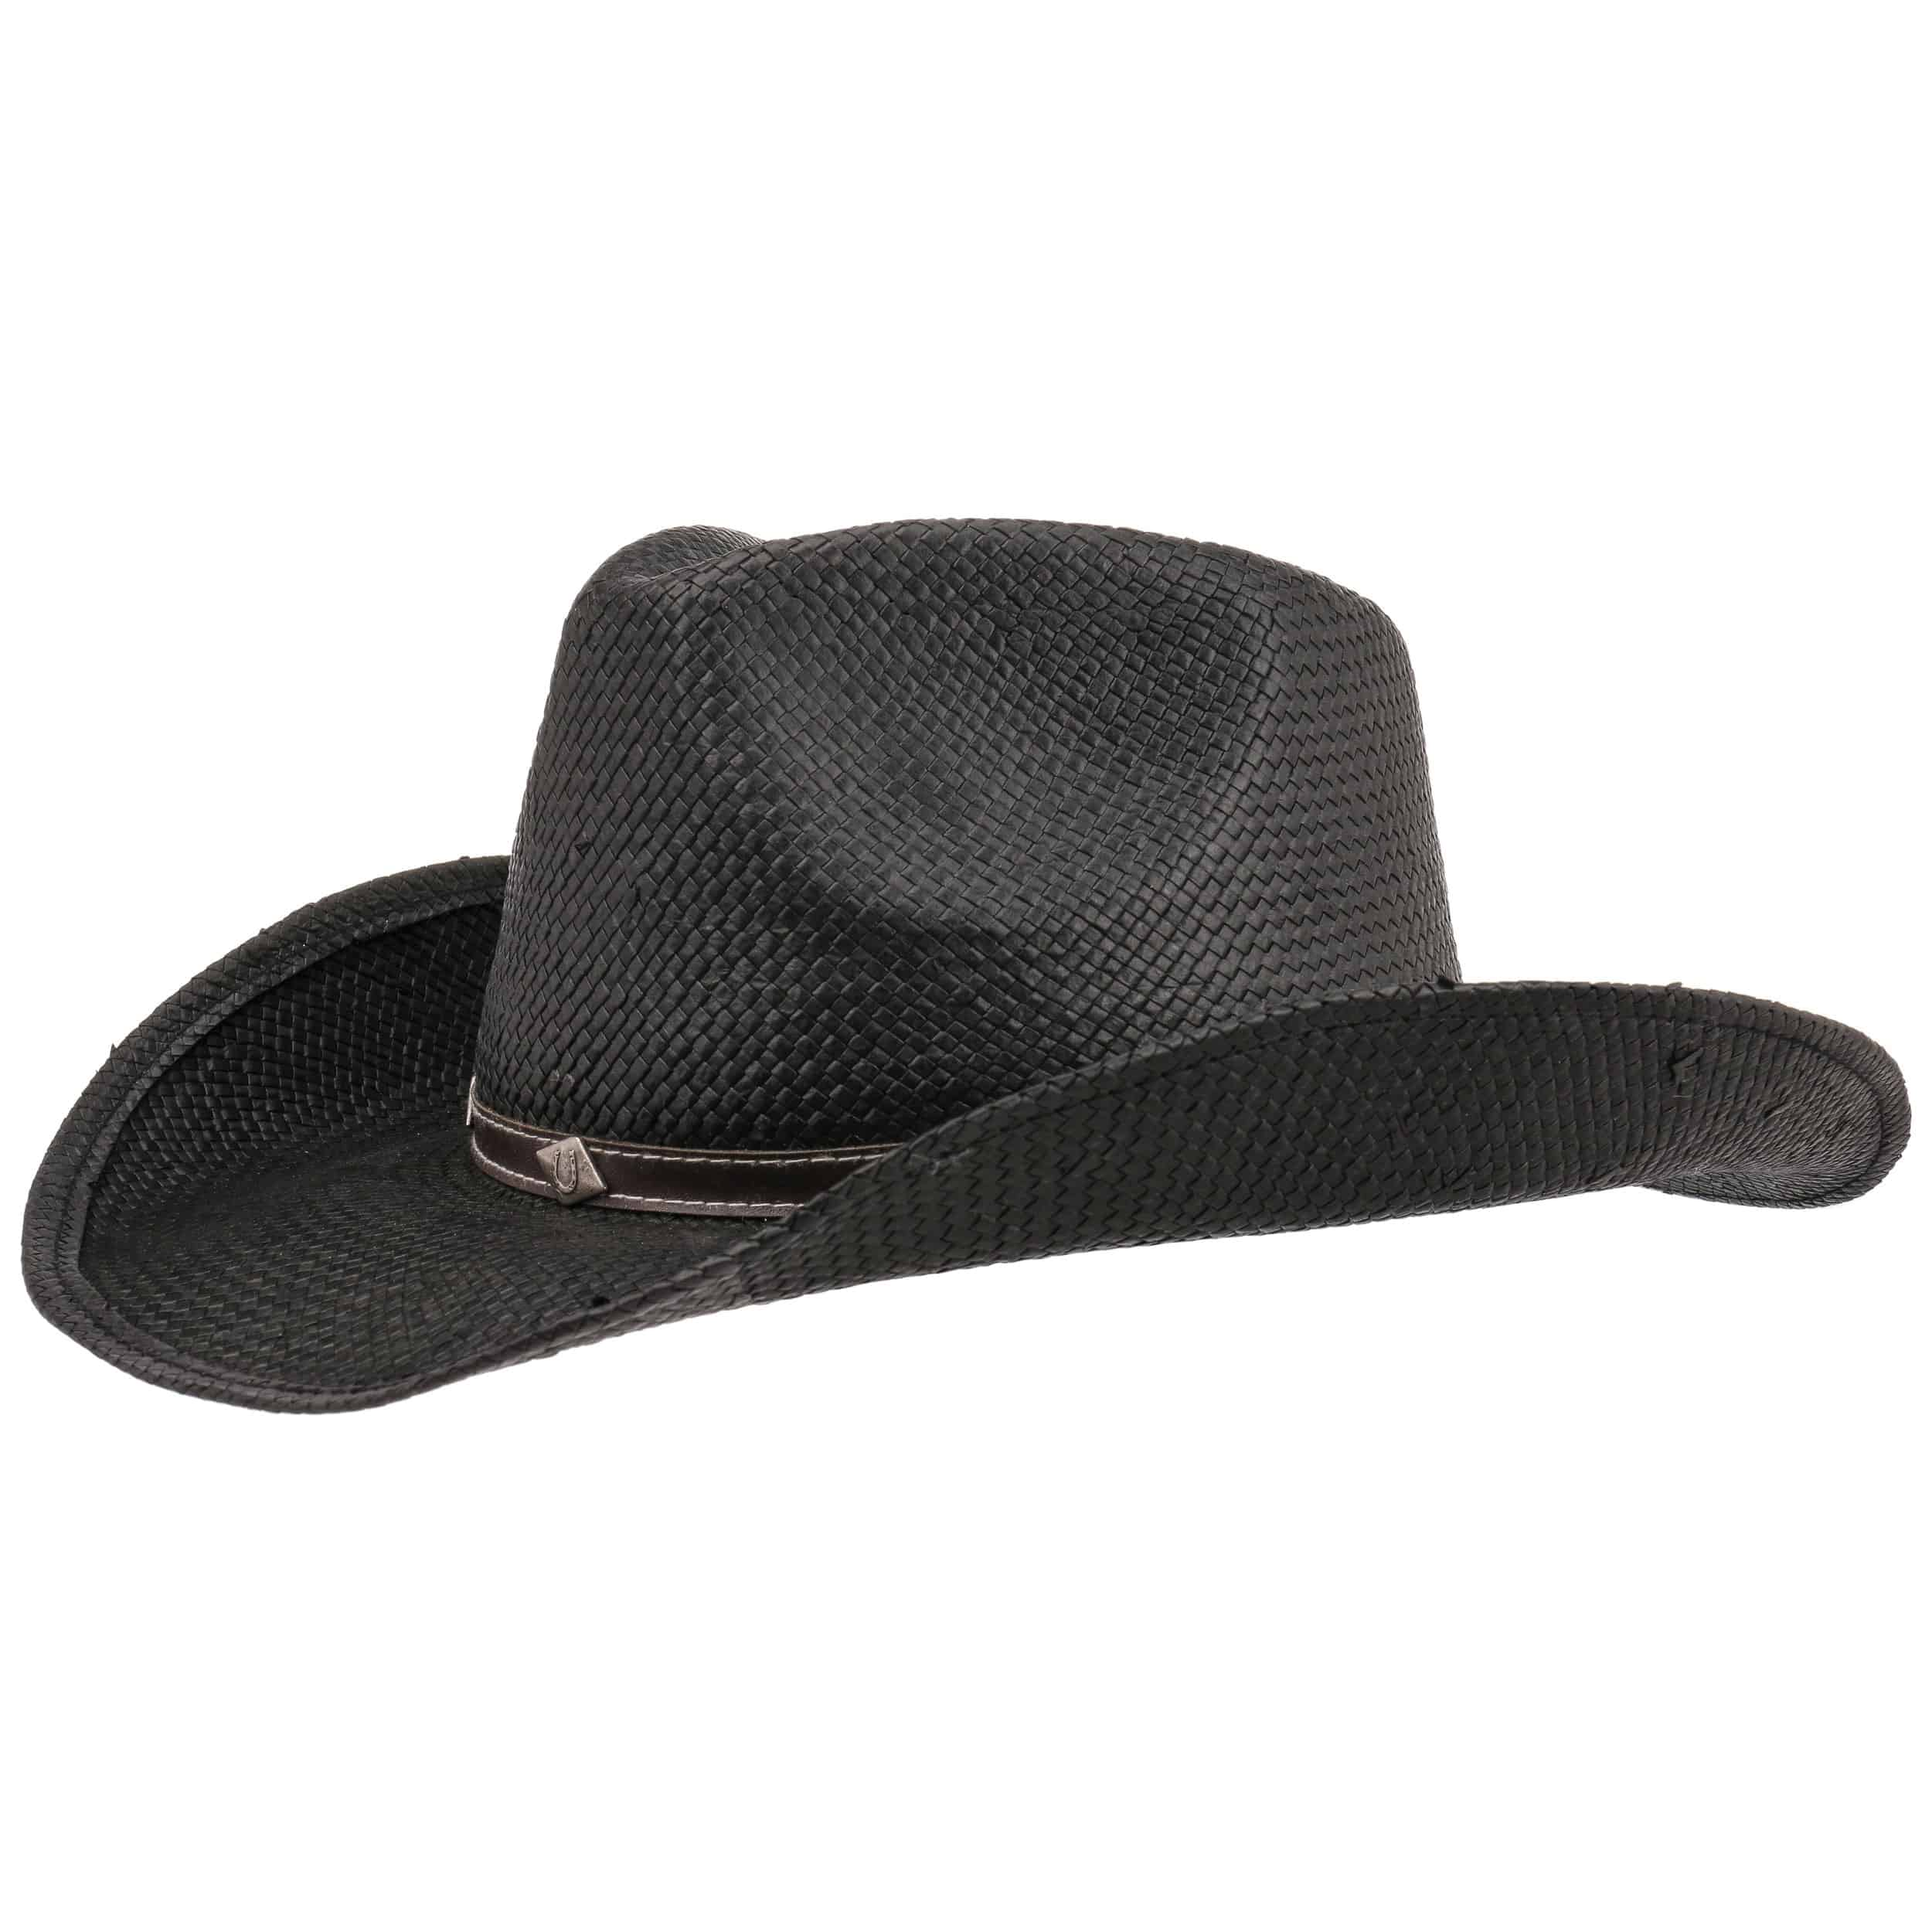 8e231021b Toyo Western Straw Hat by Conner